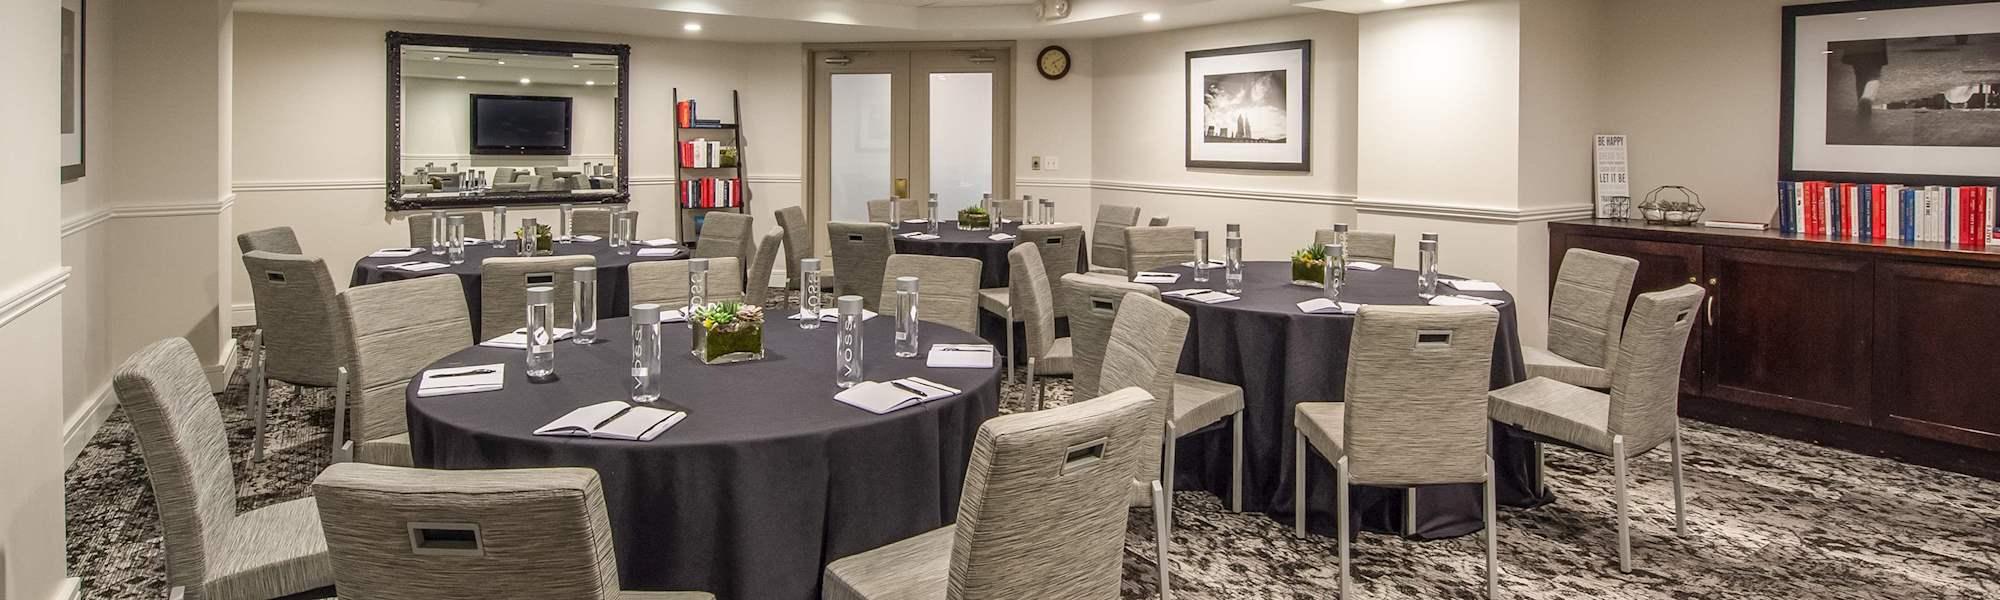 Meetings and Events Facilities at King George Hotel, Union Square San Francisco